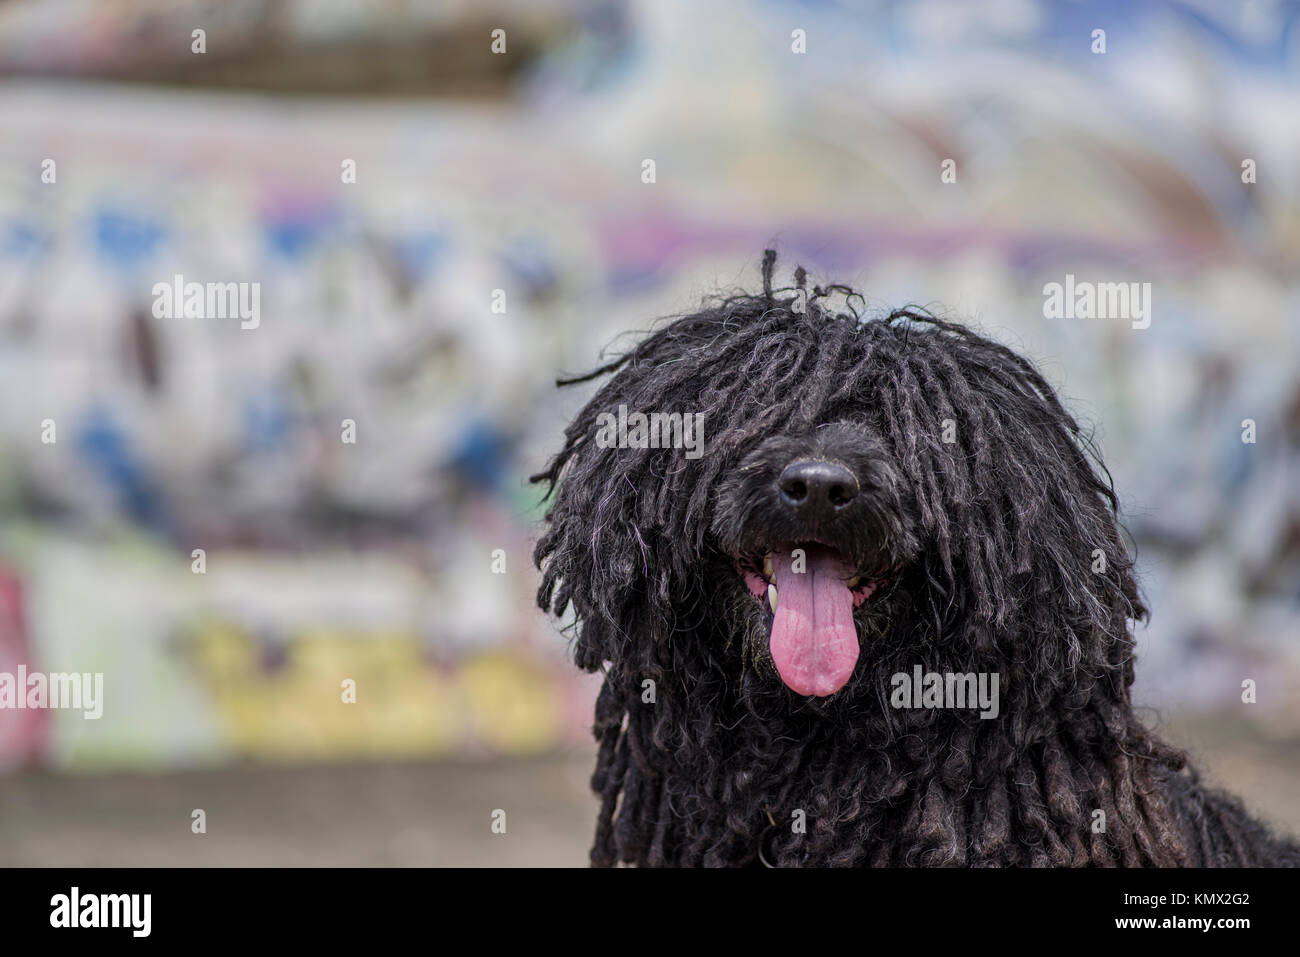 Show Dog Hungarian Puli Looking at the Camera and Posing in Front of a Graffiti Wal with Many Colors at Fort Funston Beach in San Francisco Stock Photo